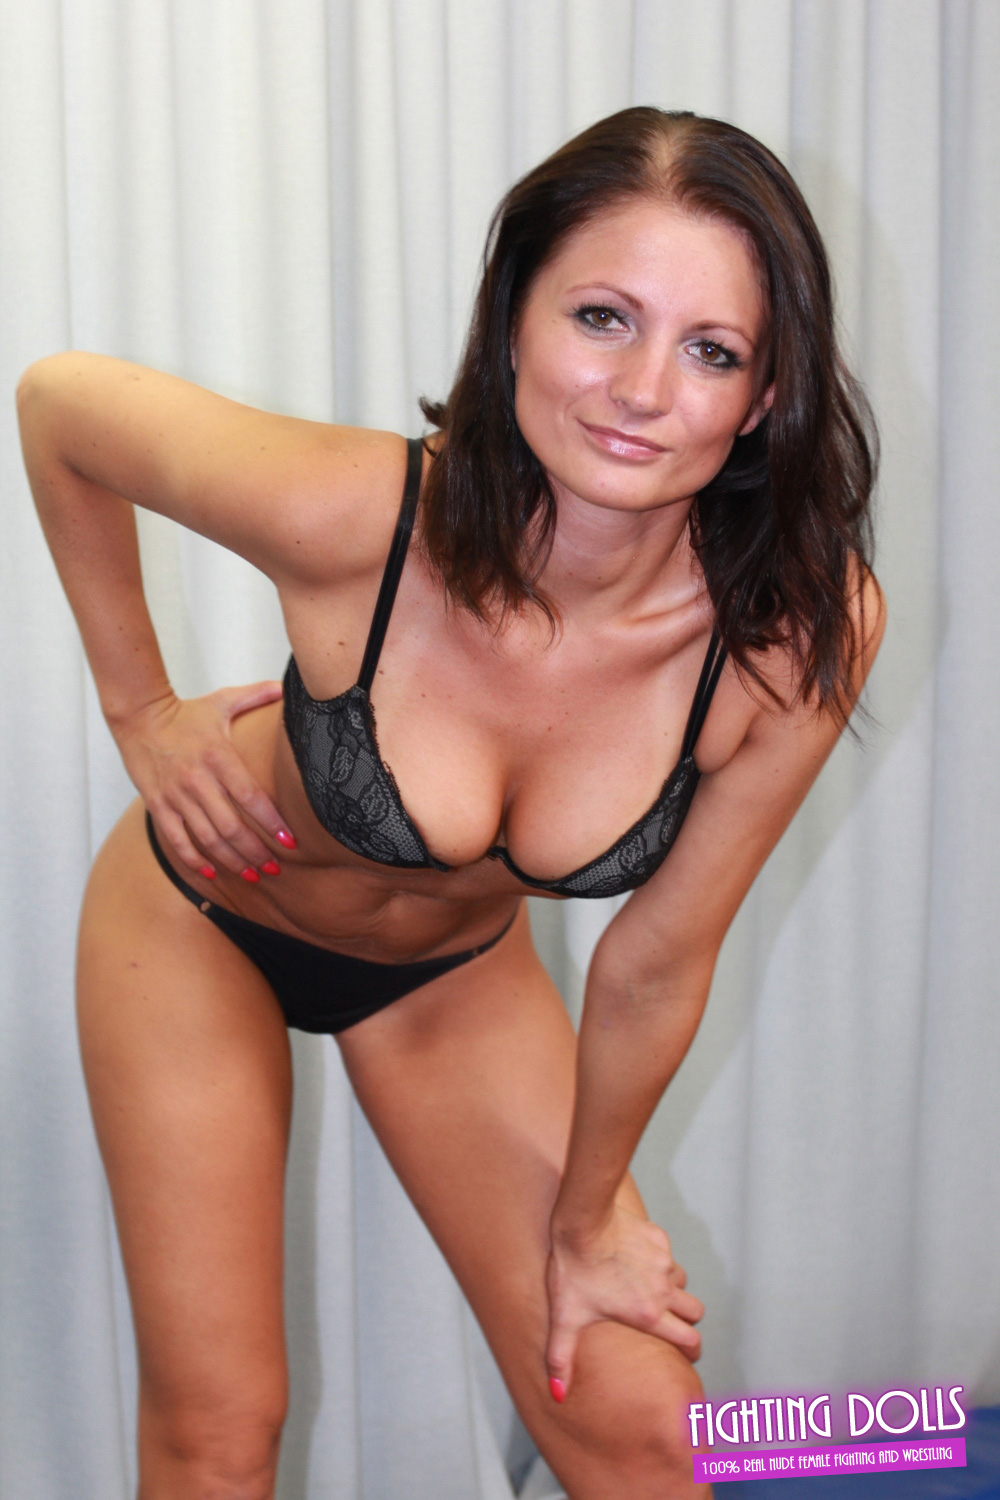 - Trib Dolls - Exclusive Real Female Tribbing and